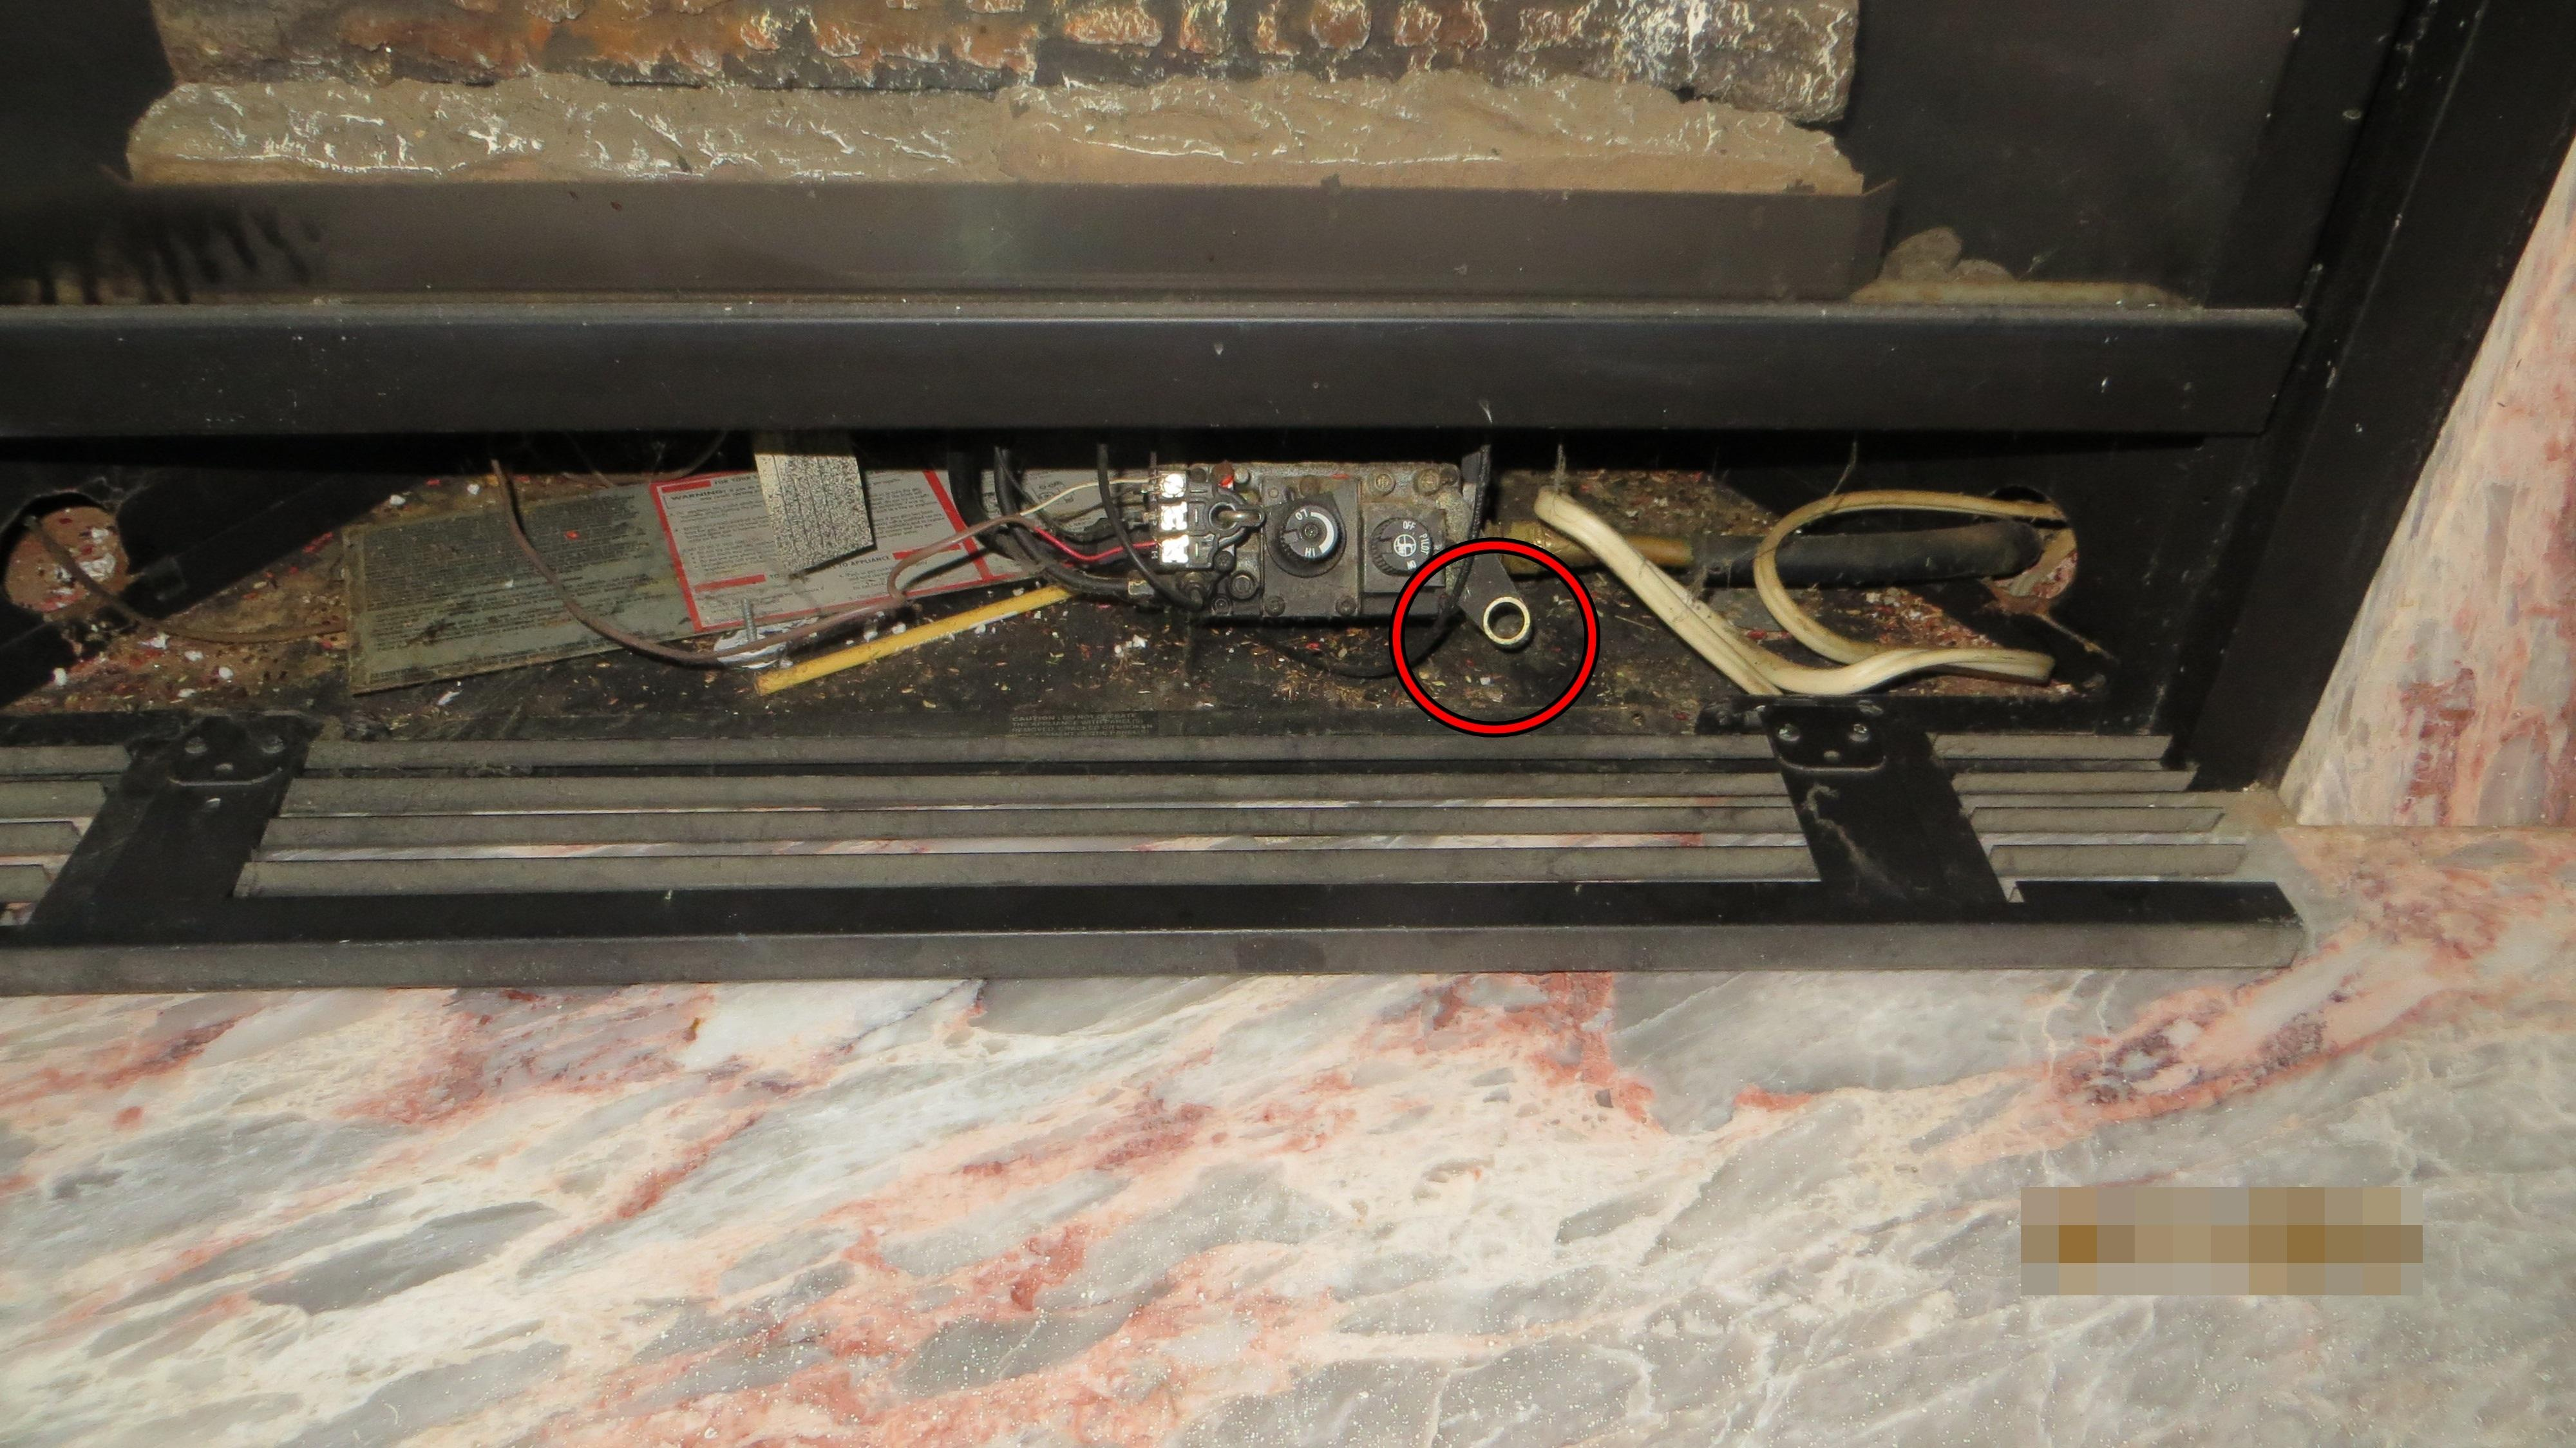 Homeowner says fireplace works, igniter missing